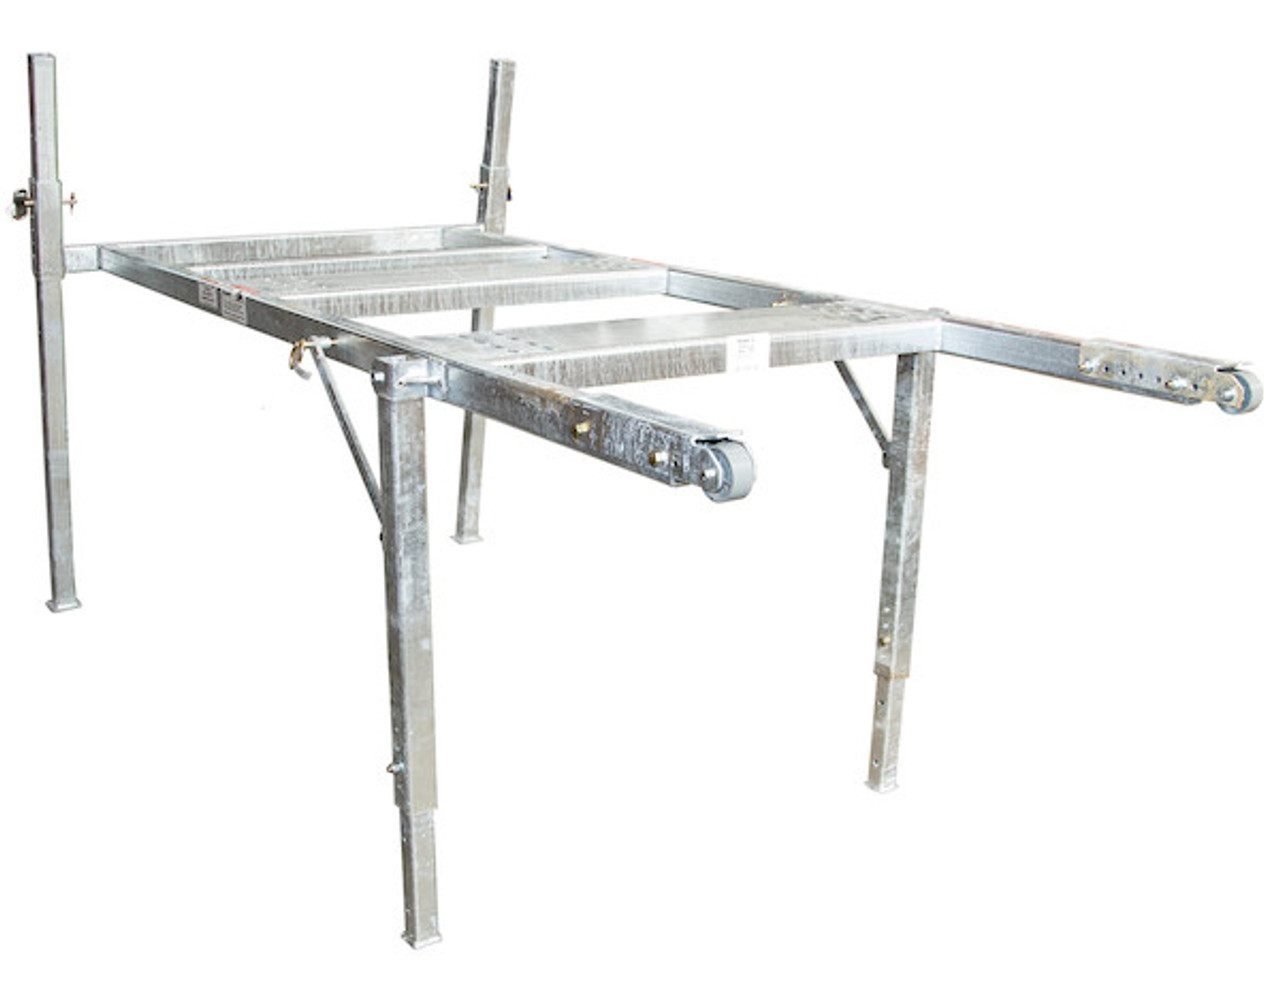 BUYERS 3037146 8 Foot Mid-Size Hot-Dipped Galvanized Spreader Stand for SaltDogg Spreader 3